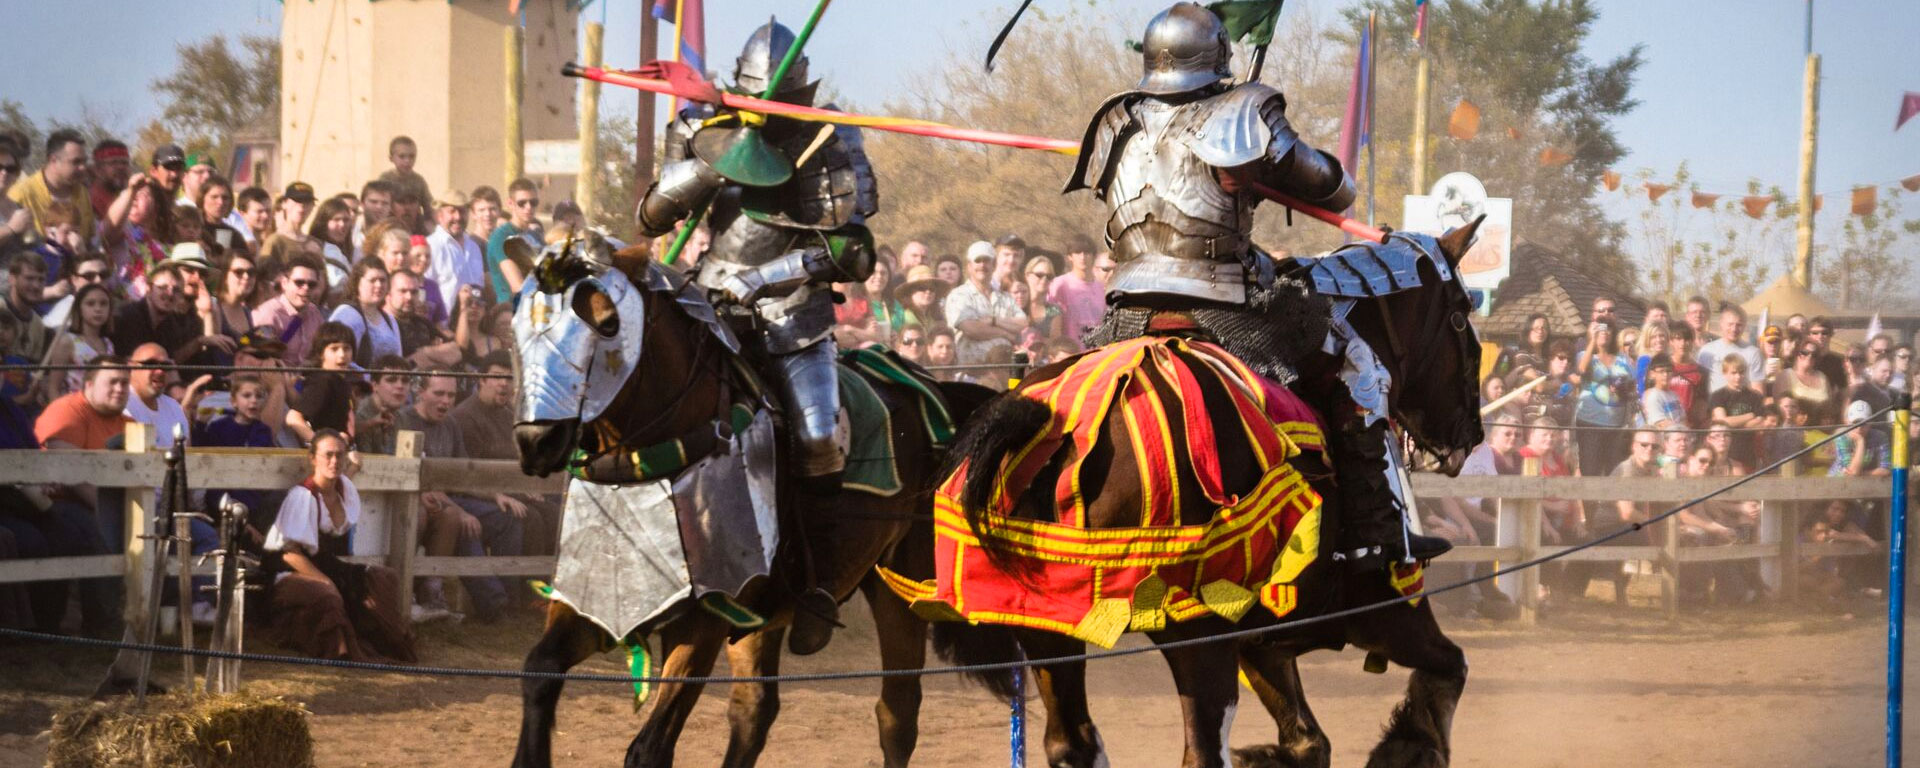 stlrenfest Fairs and Festivals St. Louis, MO | Family Entertainment St. Louis ...